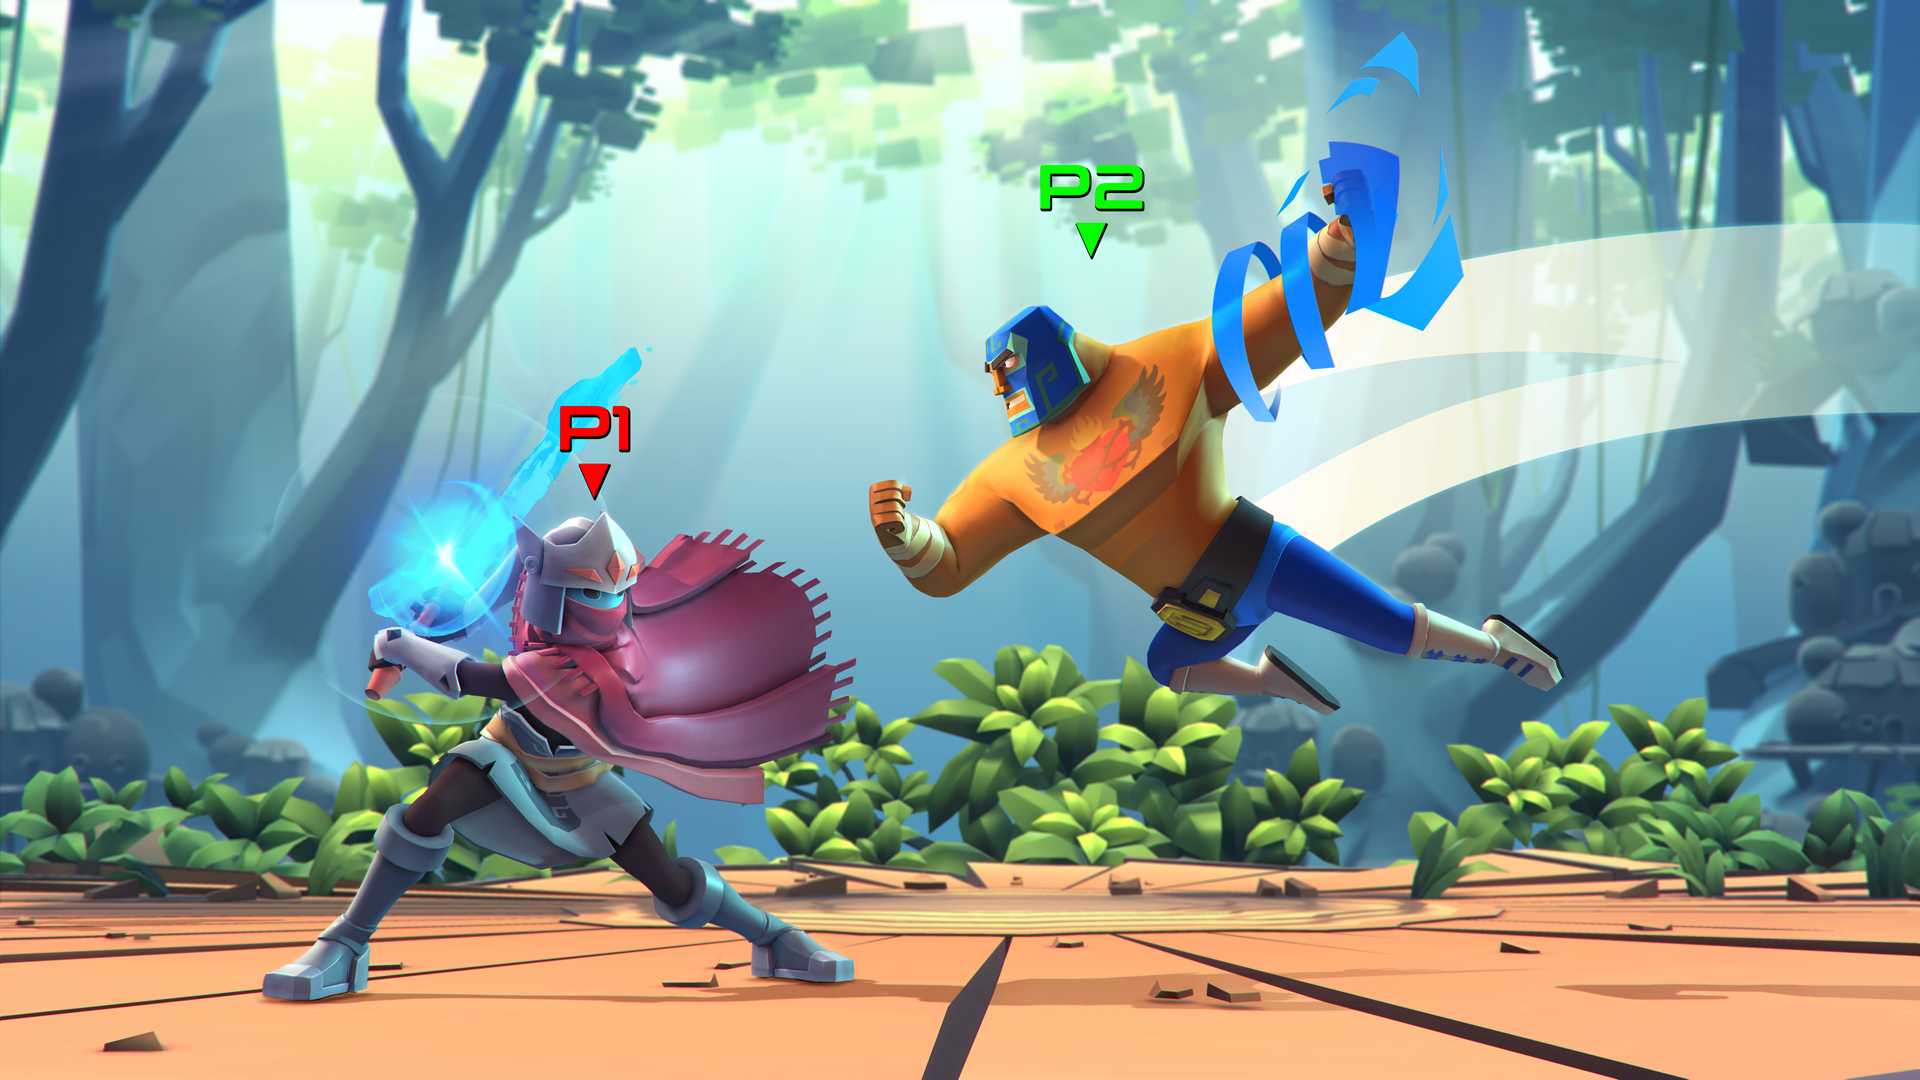 Brawlout - Guacamelee vs Hyper Light Drifter